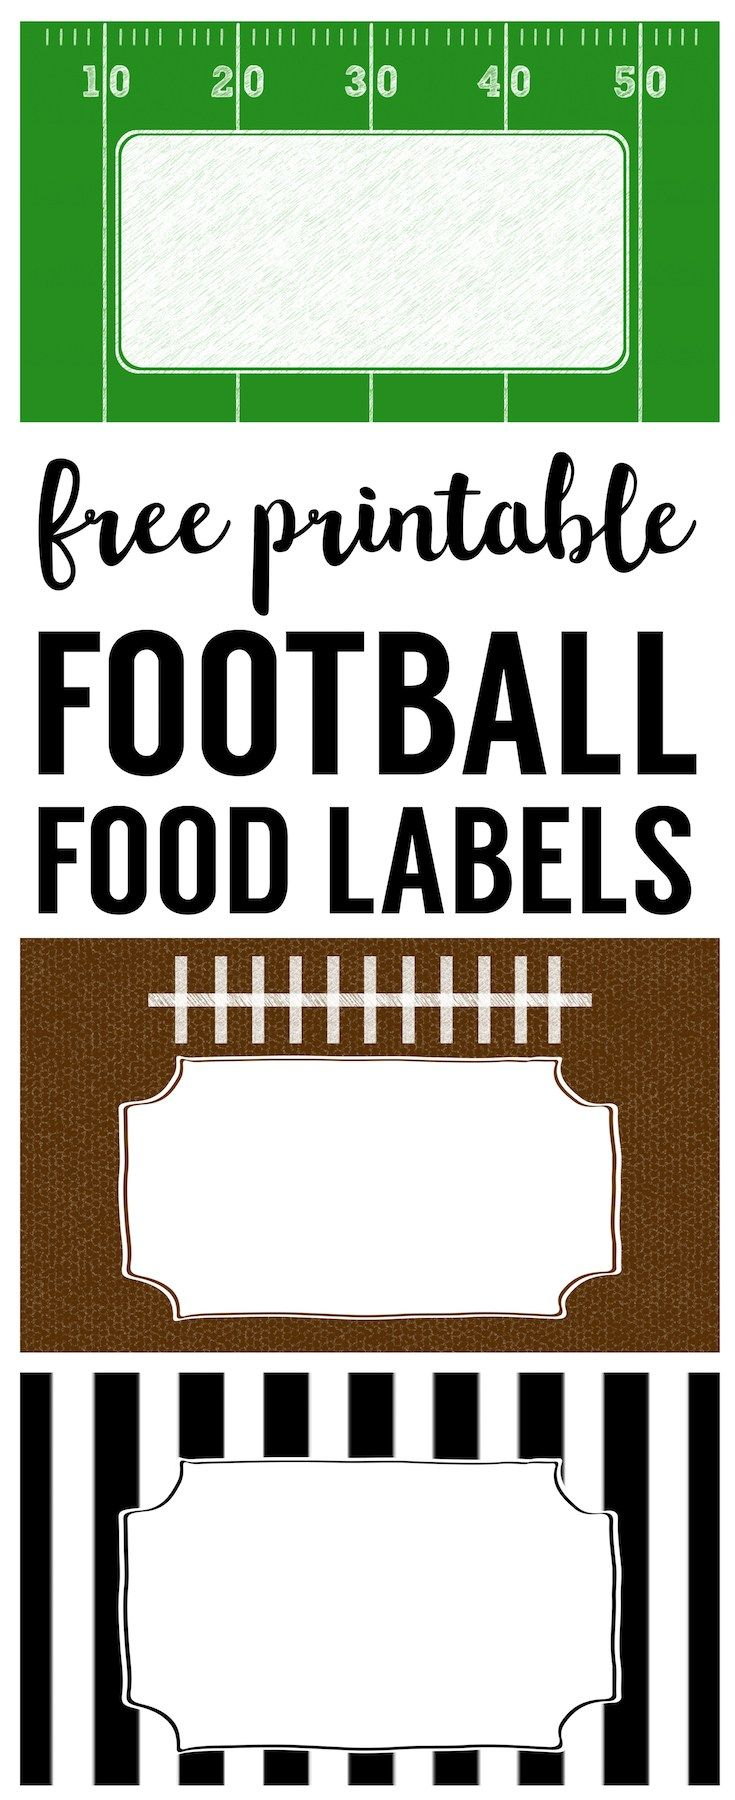 sight name easy with football banner party wild flashcards labels recipe alaska tequila decor for happy fun free more from glaze and lime tags com happyandblessedhome decorations salmon words